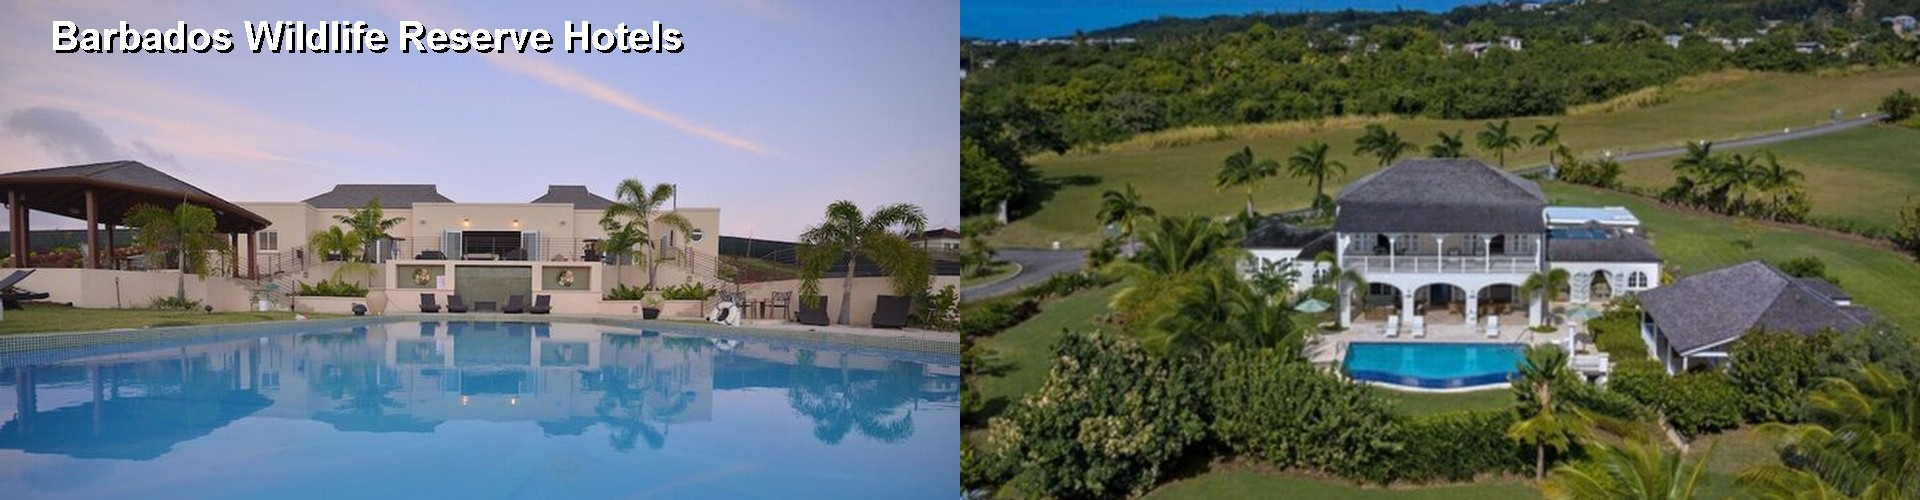 5 Best Hotels near Barbados Wildlife Reserve